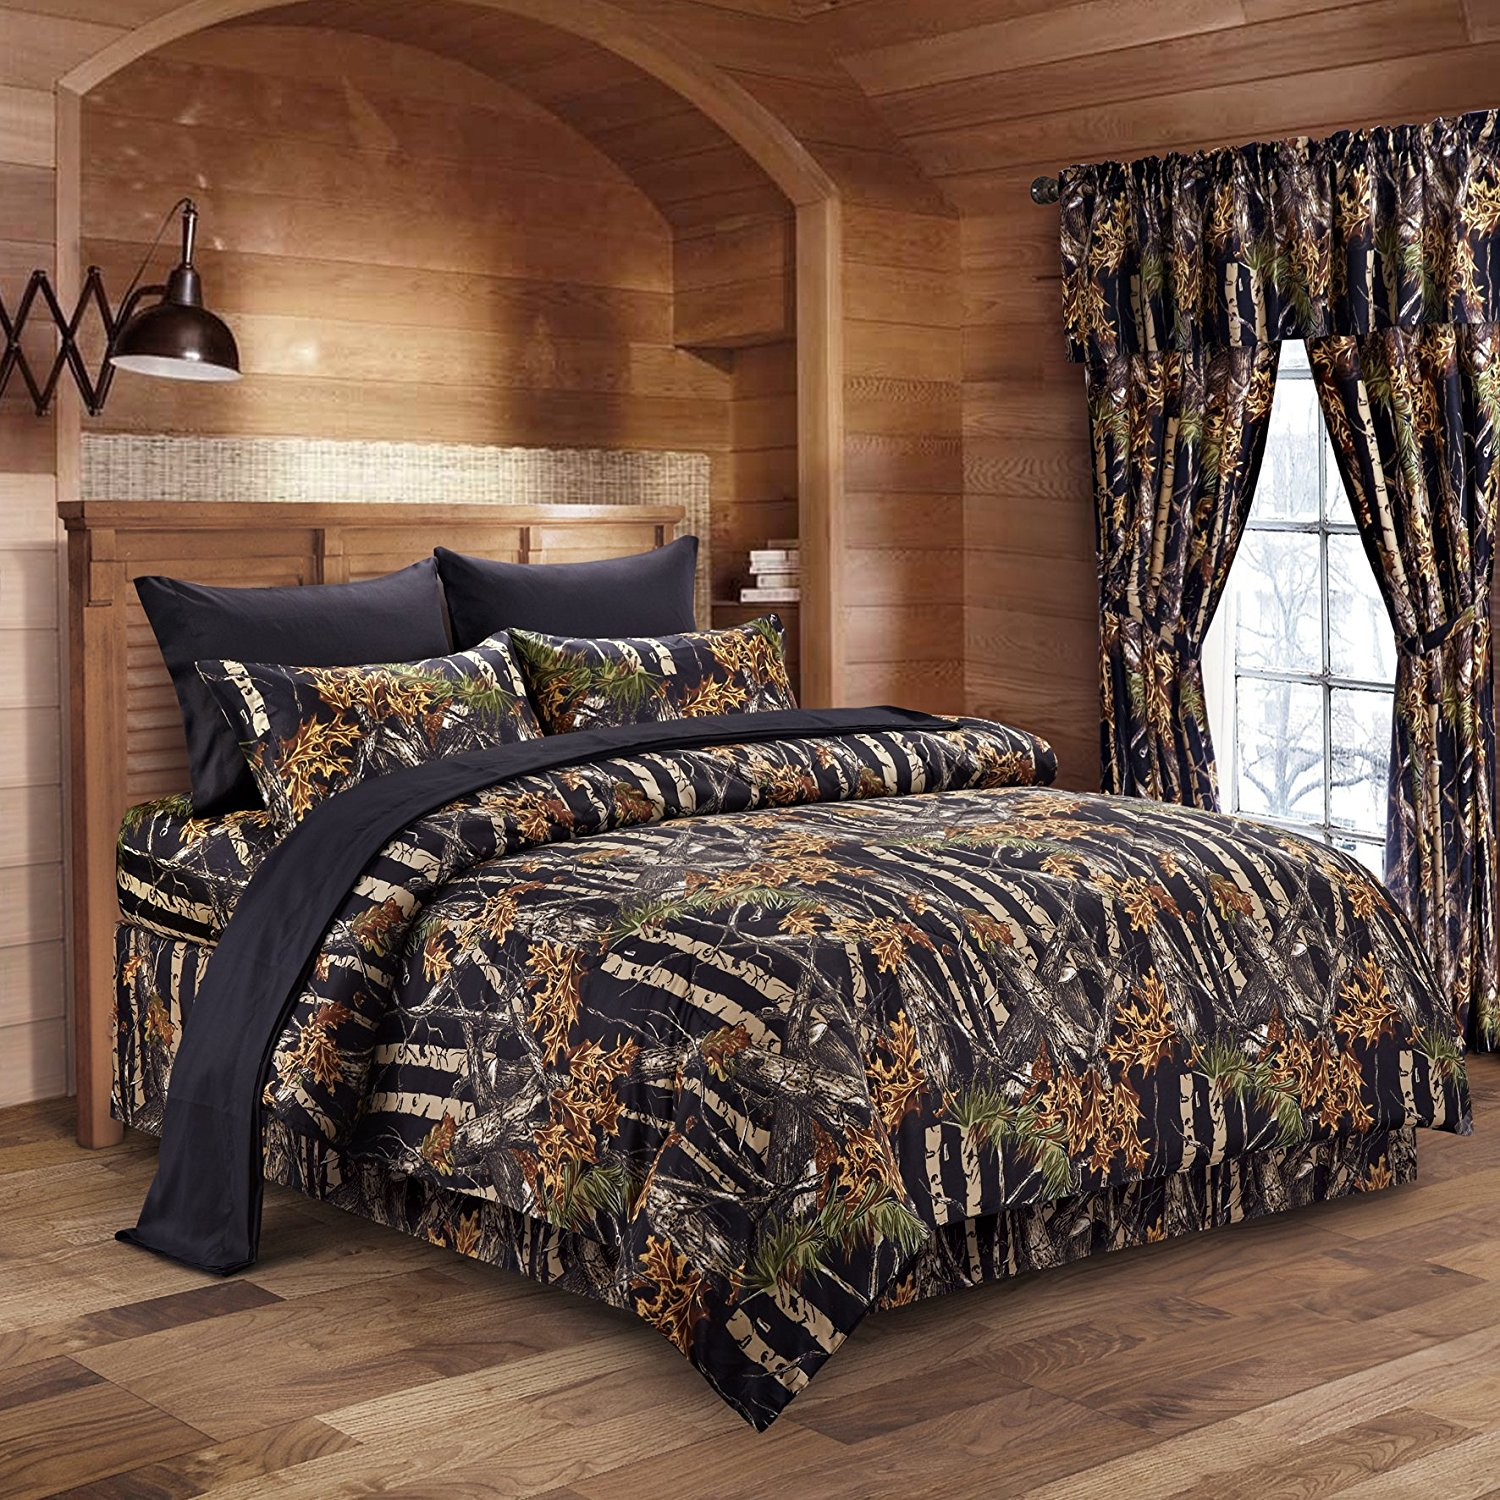 The Woods Black Camouflage Twin 5pc Premium Luxury Comforter, SHeet, Pillowcases, and Bedskirt Set by Regal... by Regal Comfort